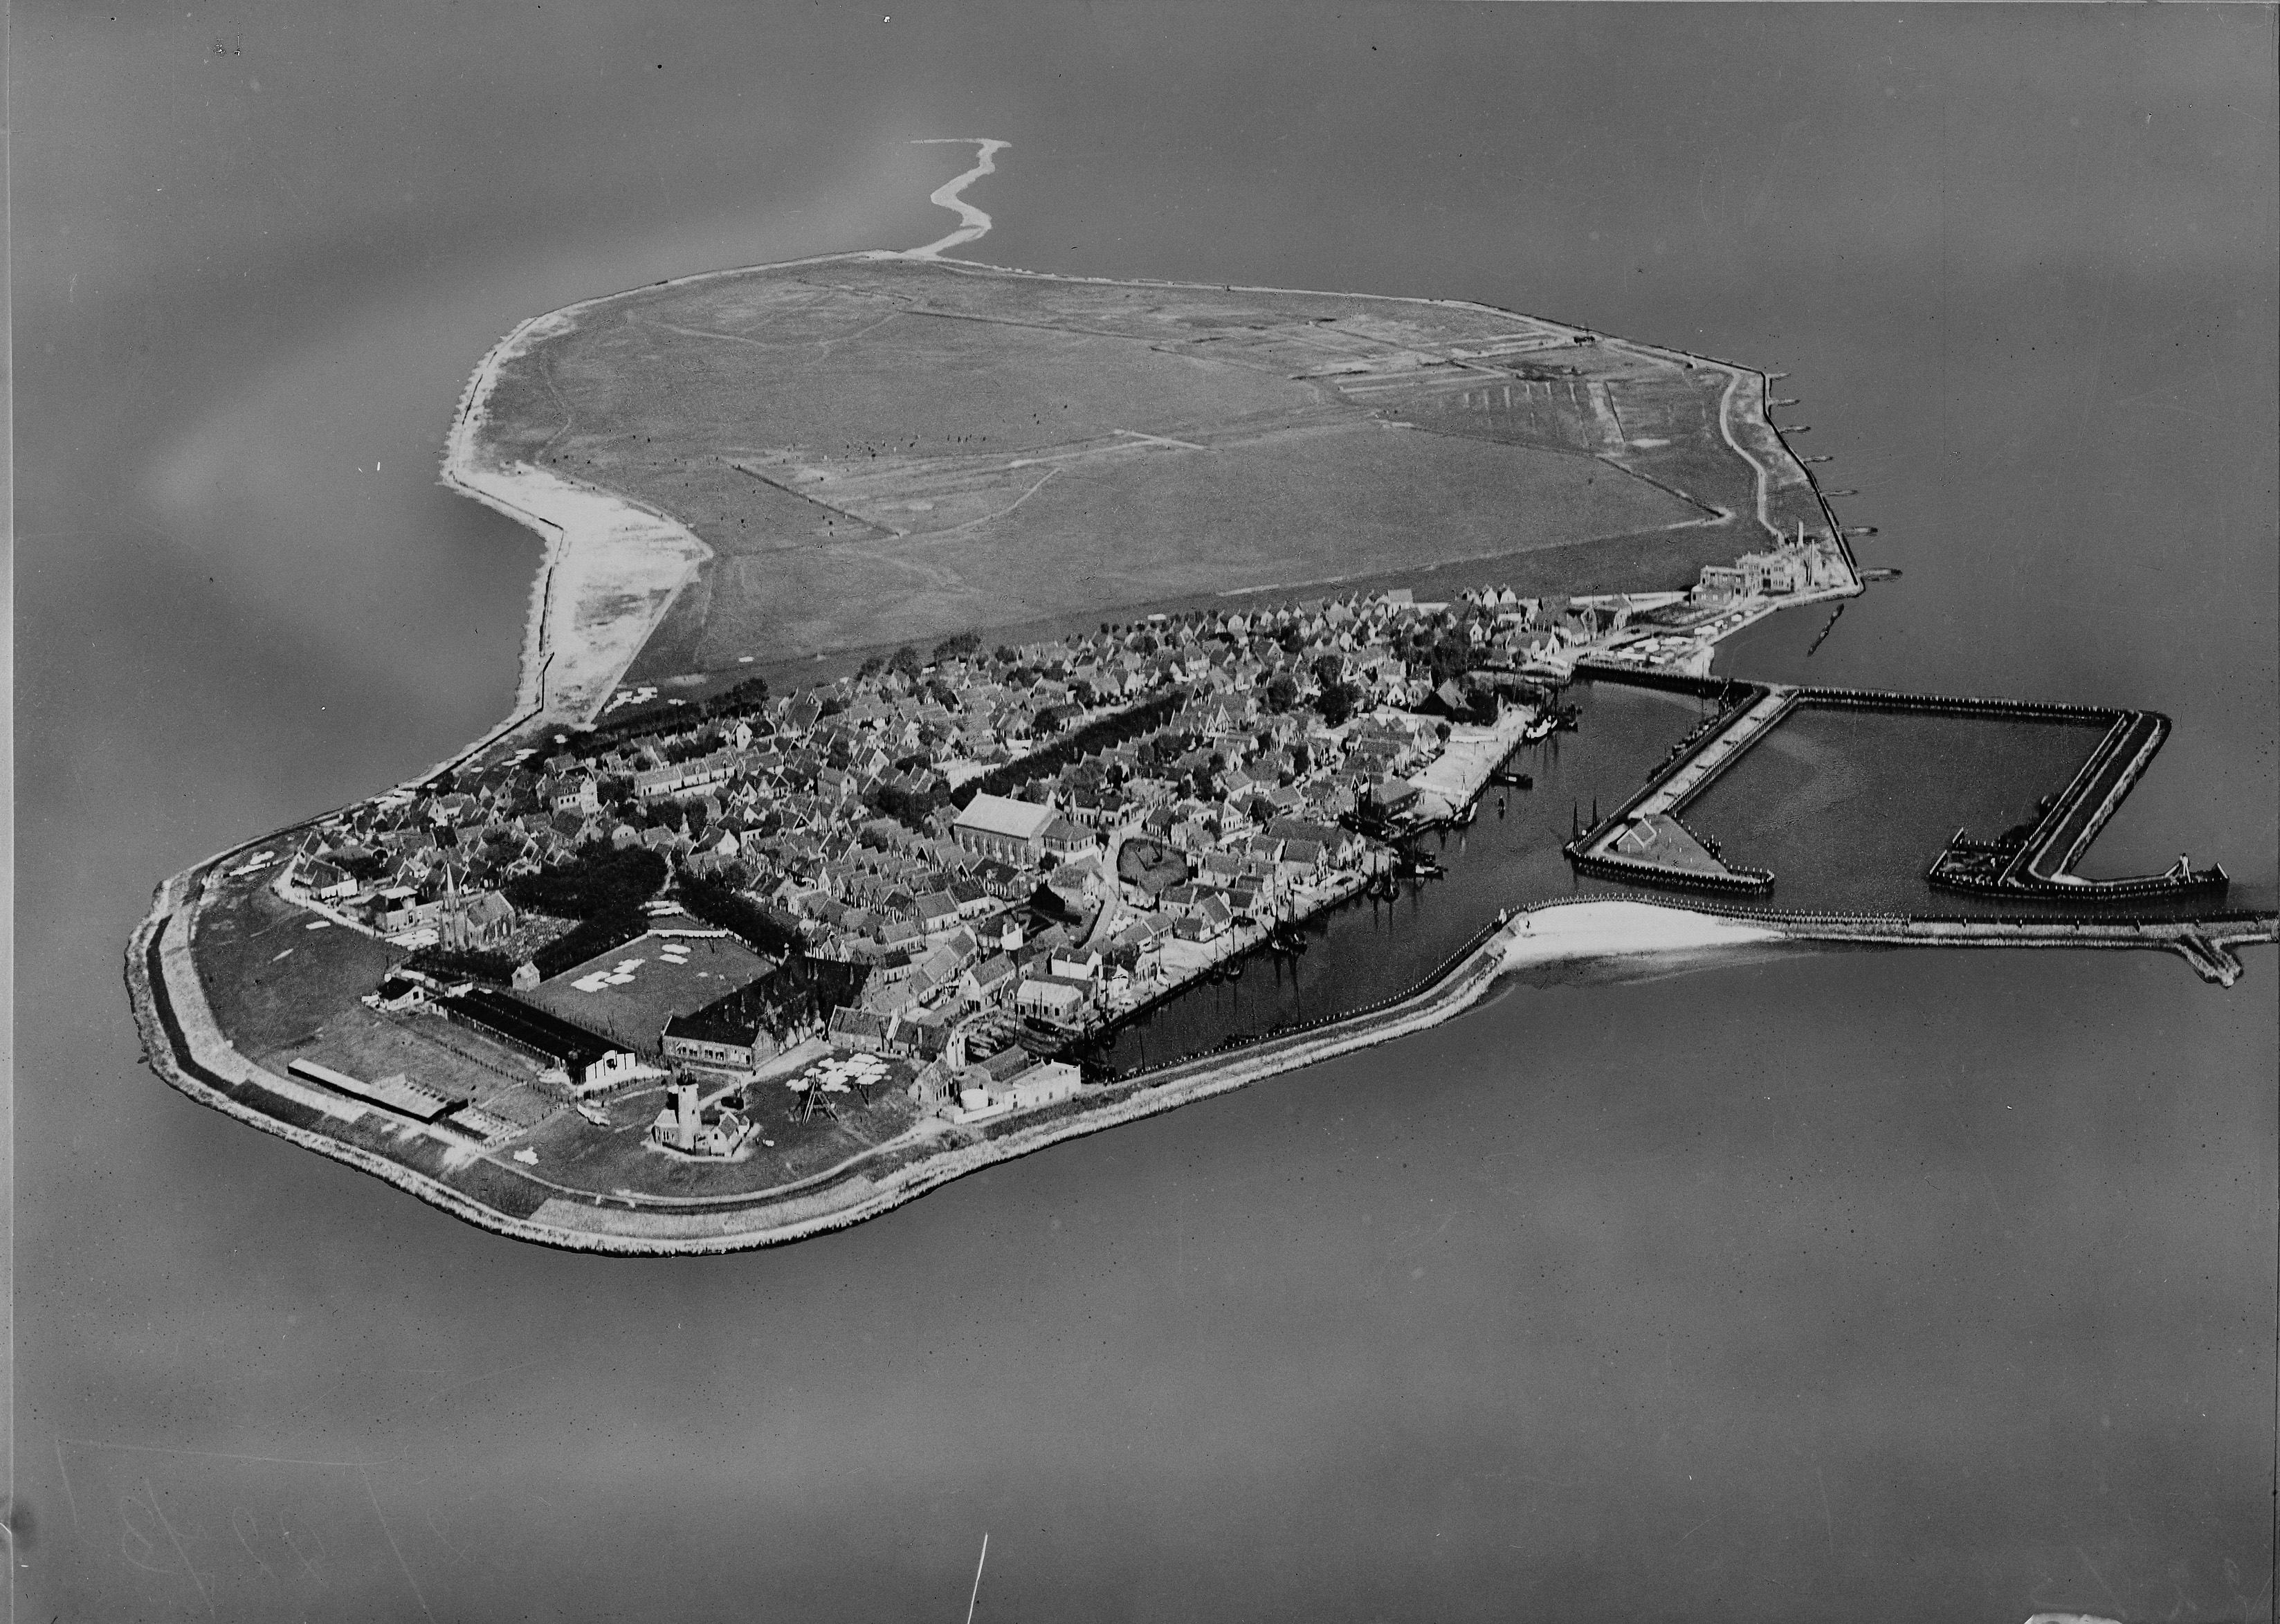 File:NIMH - 2011 - 0511 - Aerial photograph of Urk, The Netherlands - 1920  - 1940.jpg - Wikimedia Commons